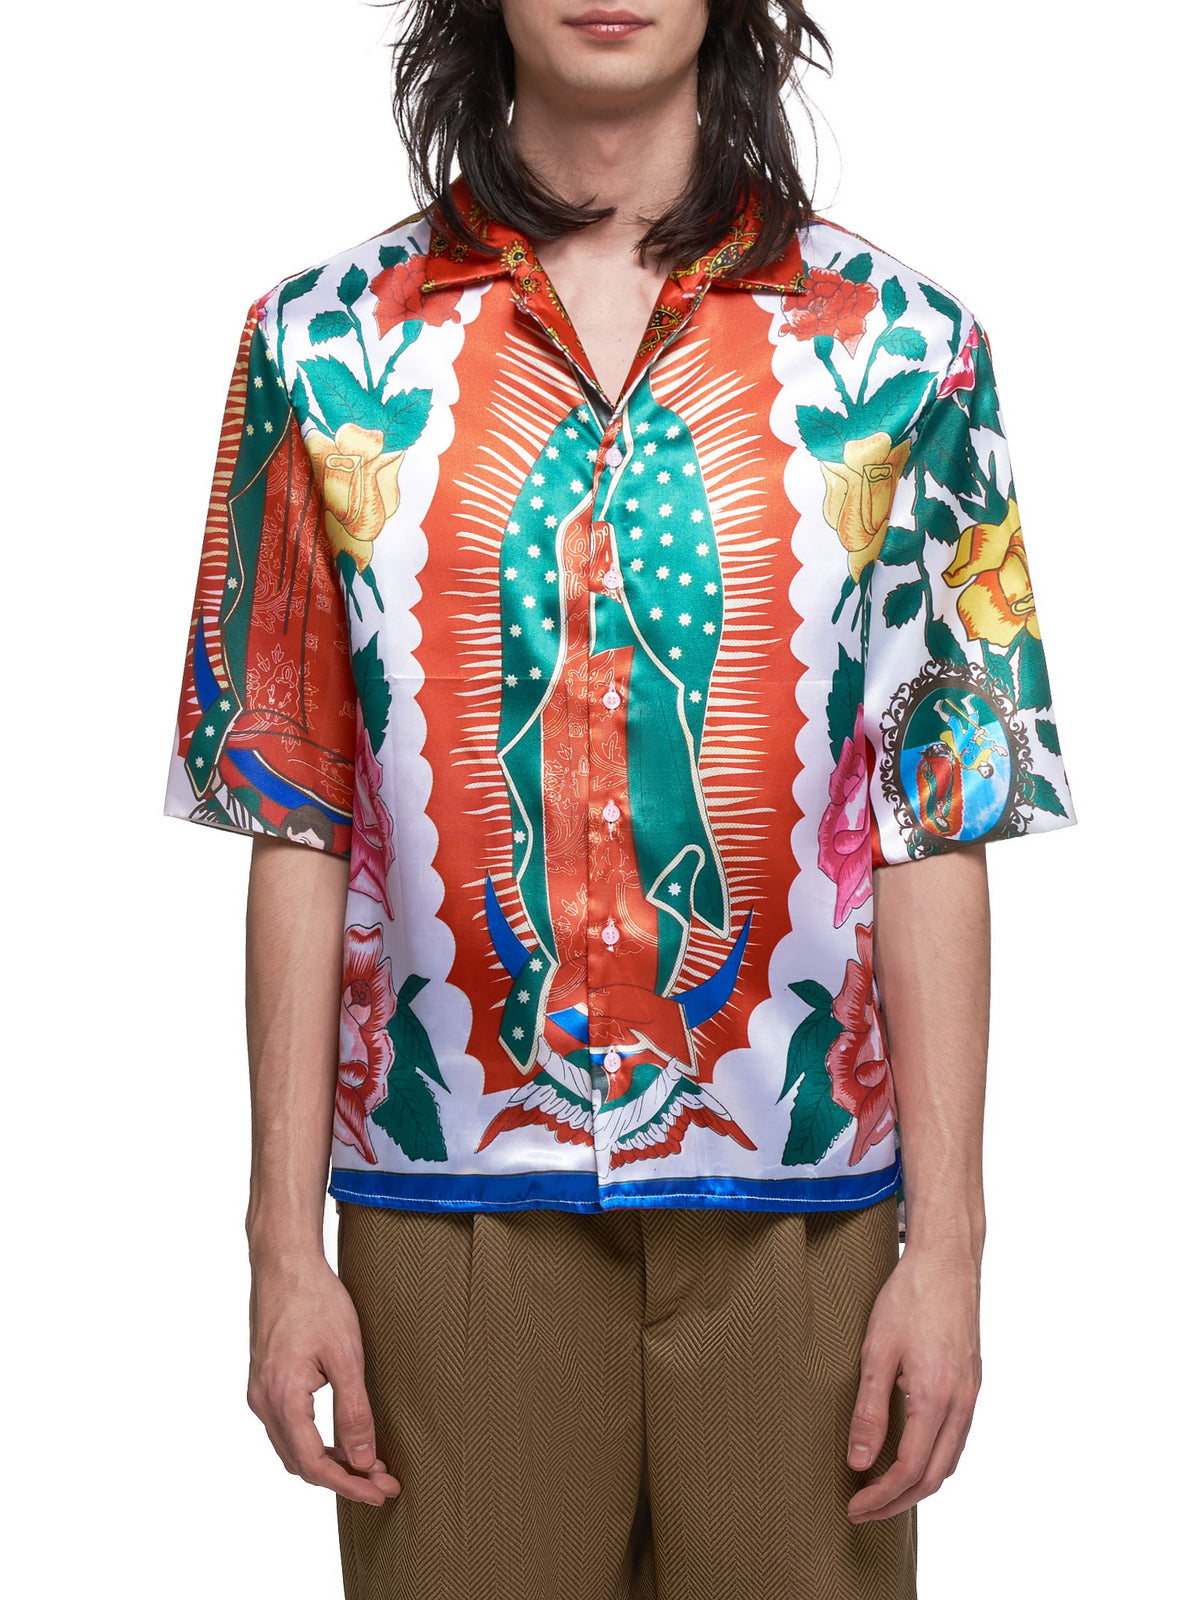 Virginal Acapulco Shirt (VIRGINIA-09-B1-01-MULTI)